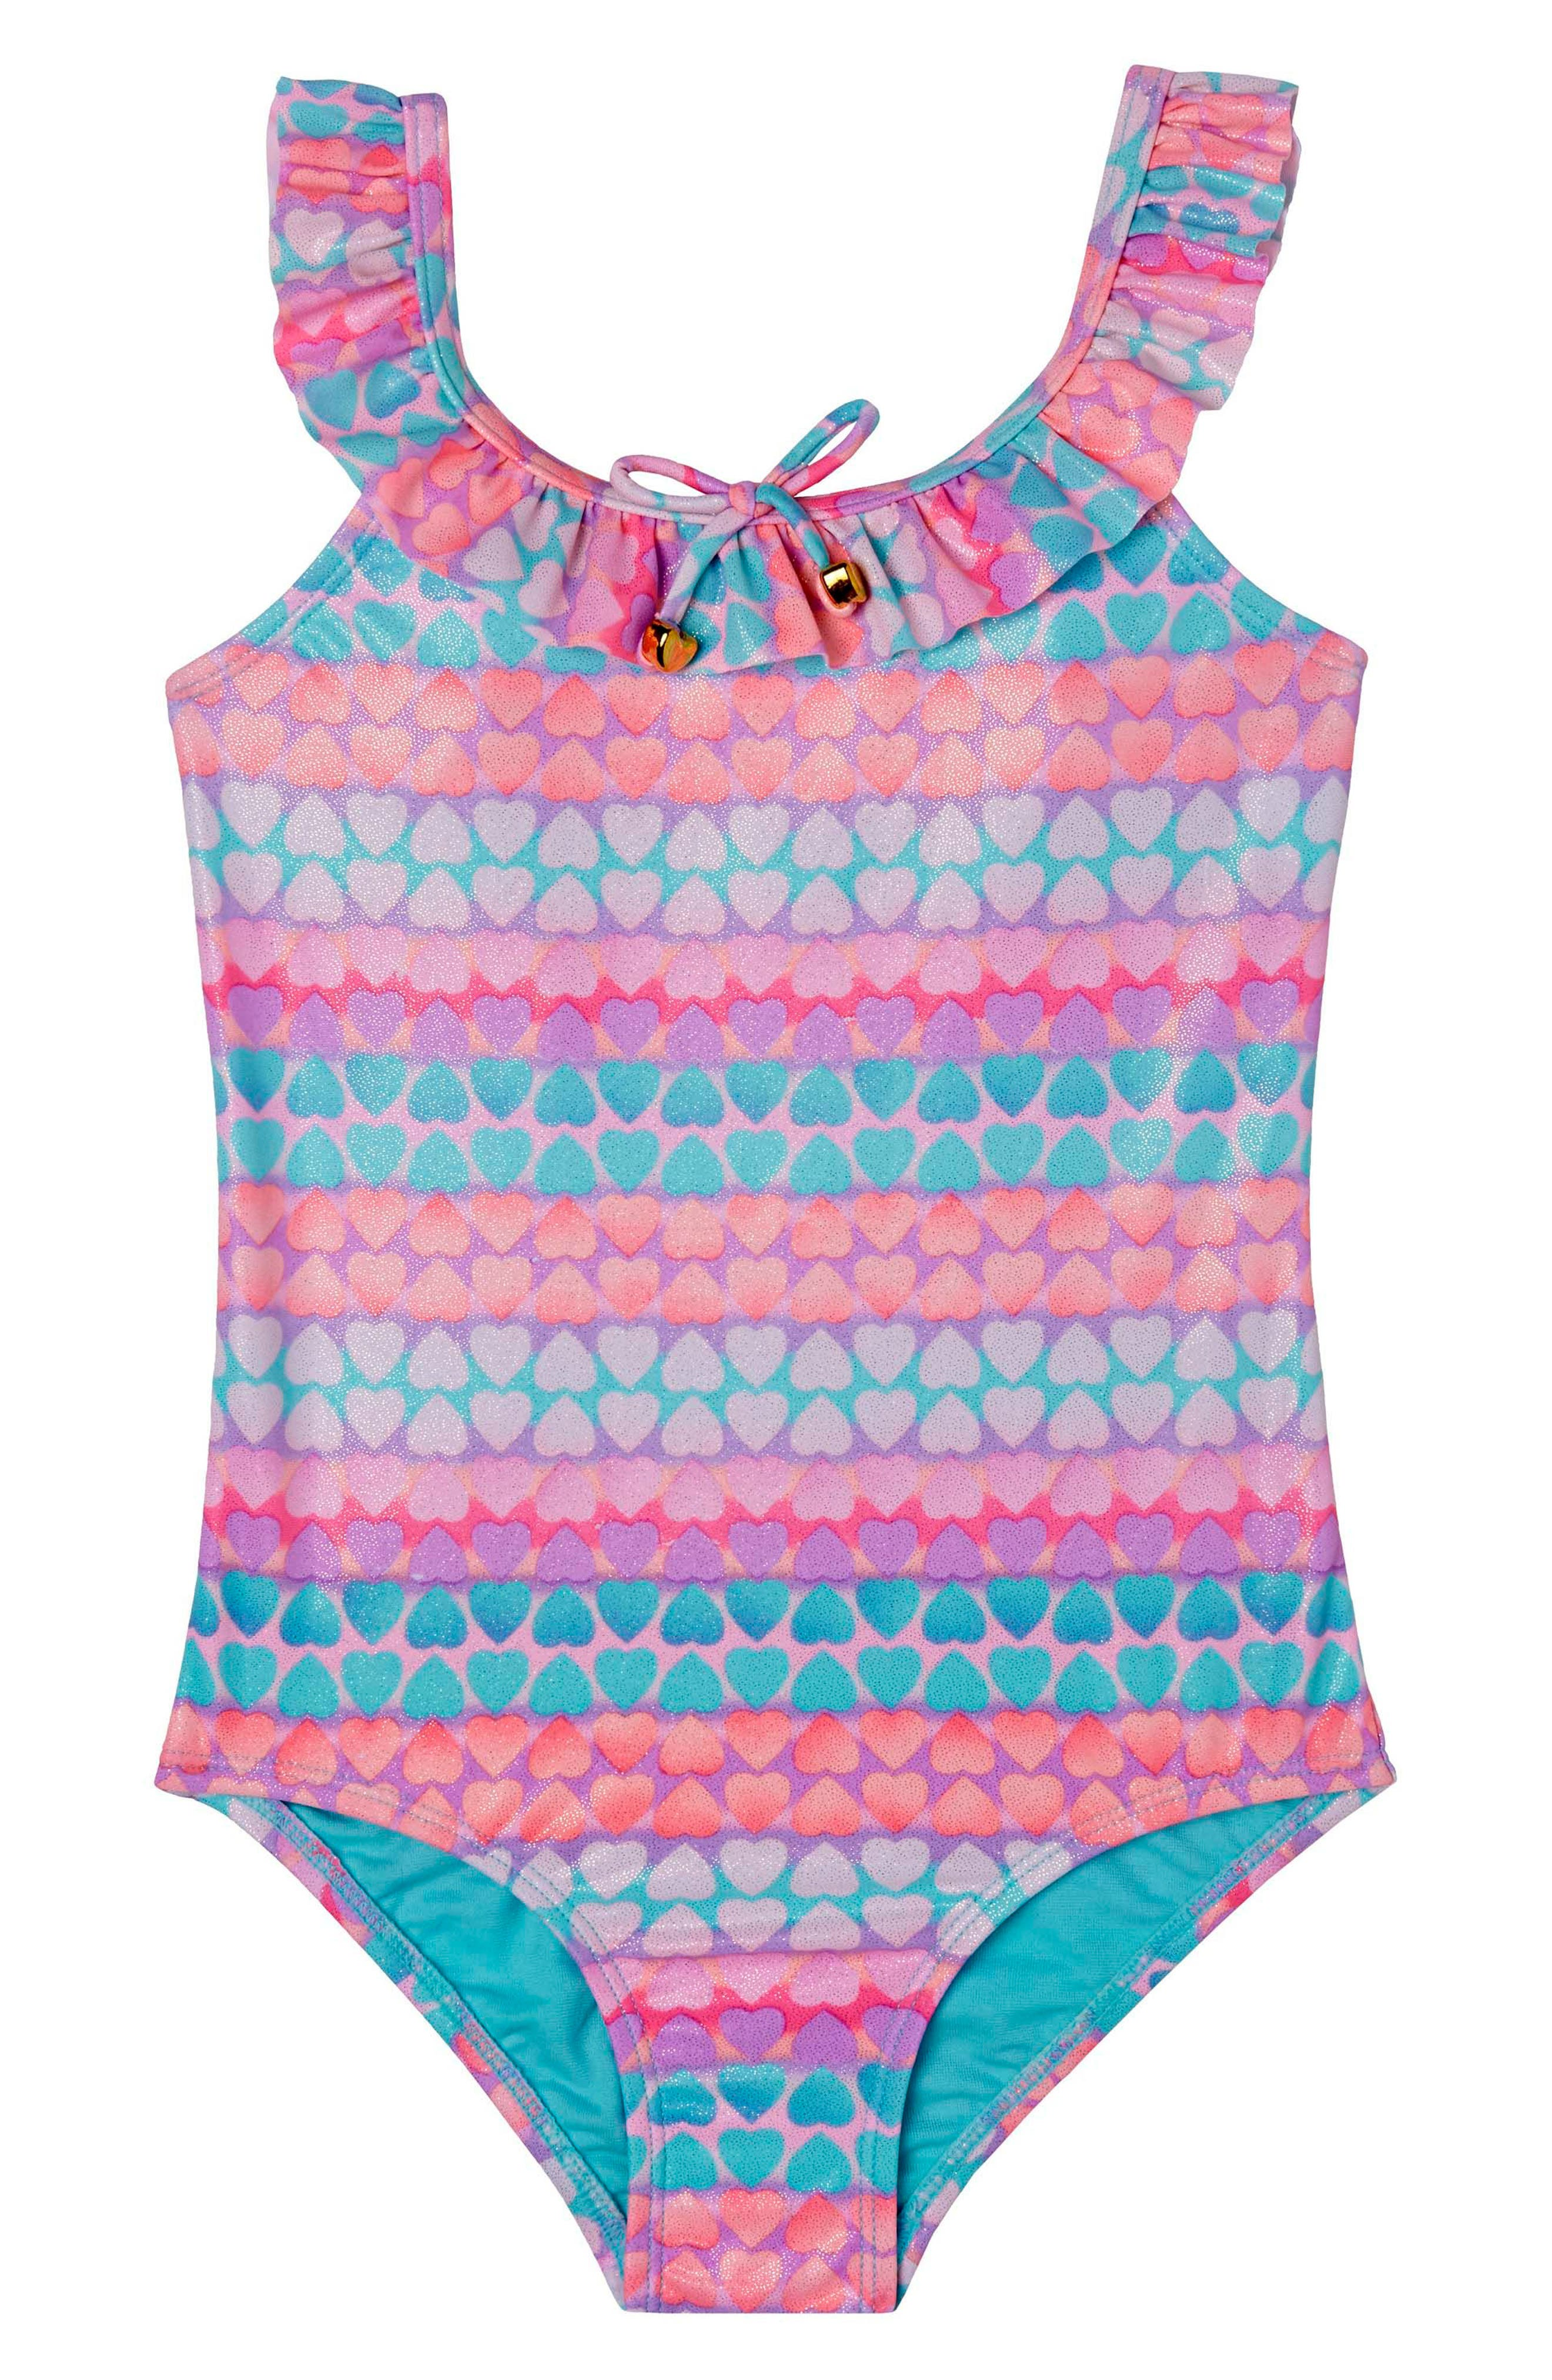 Alternate Image 1 Selected - Hula Star Hearts Galore One-Piece Swimsuit (Toddler Girls & Little Girls)